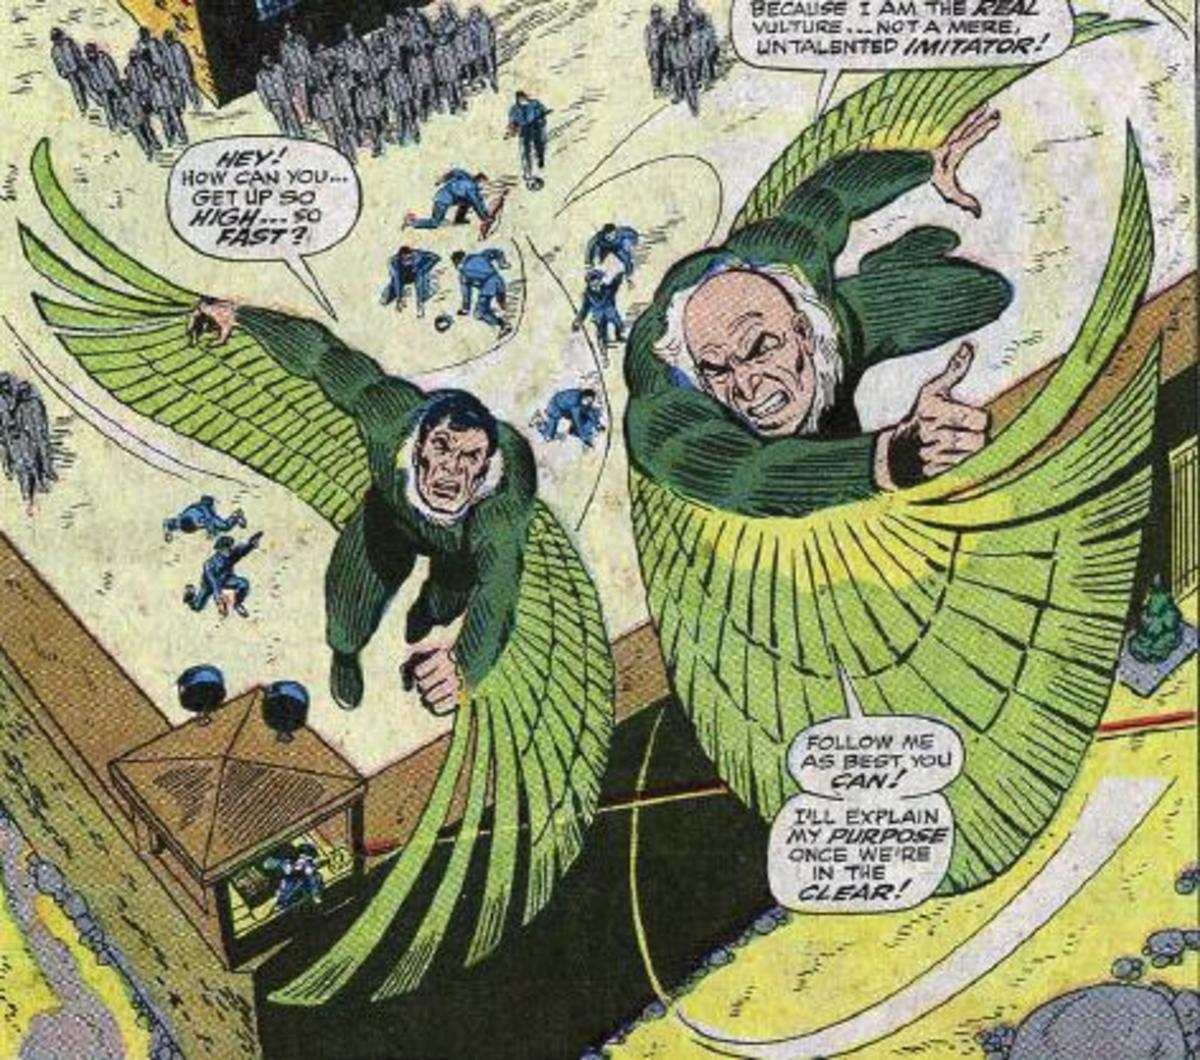 The original Vulture followed by his second stringer, Blackie Drago.